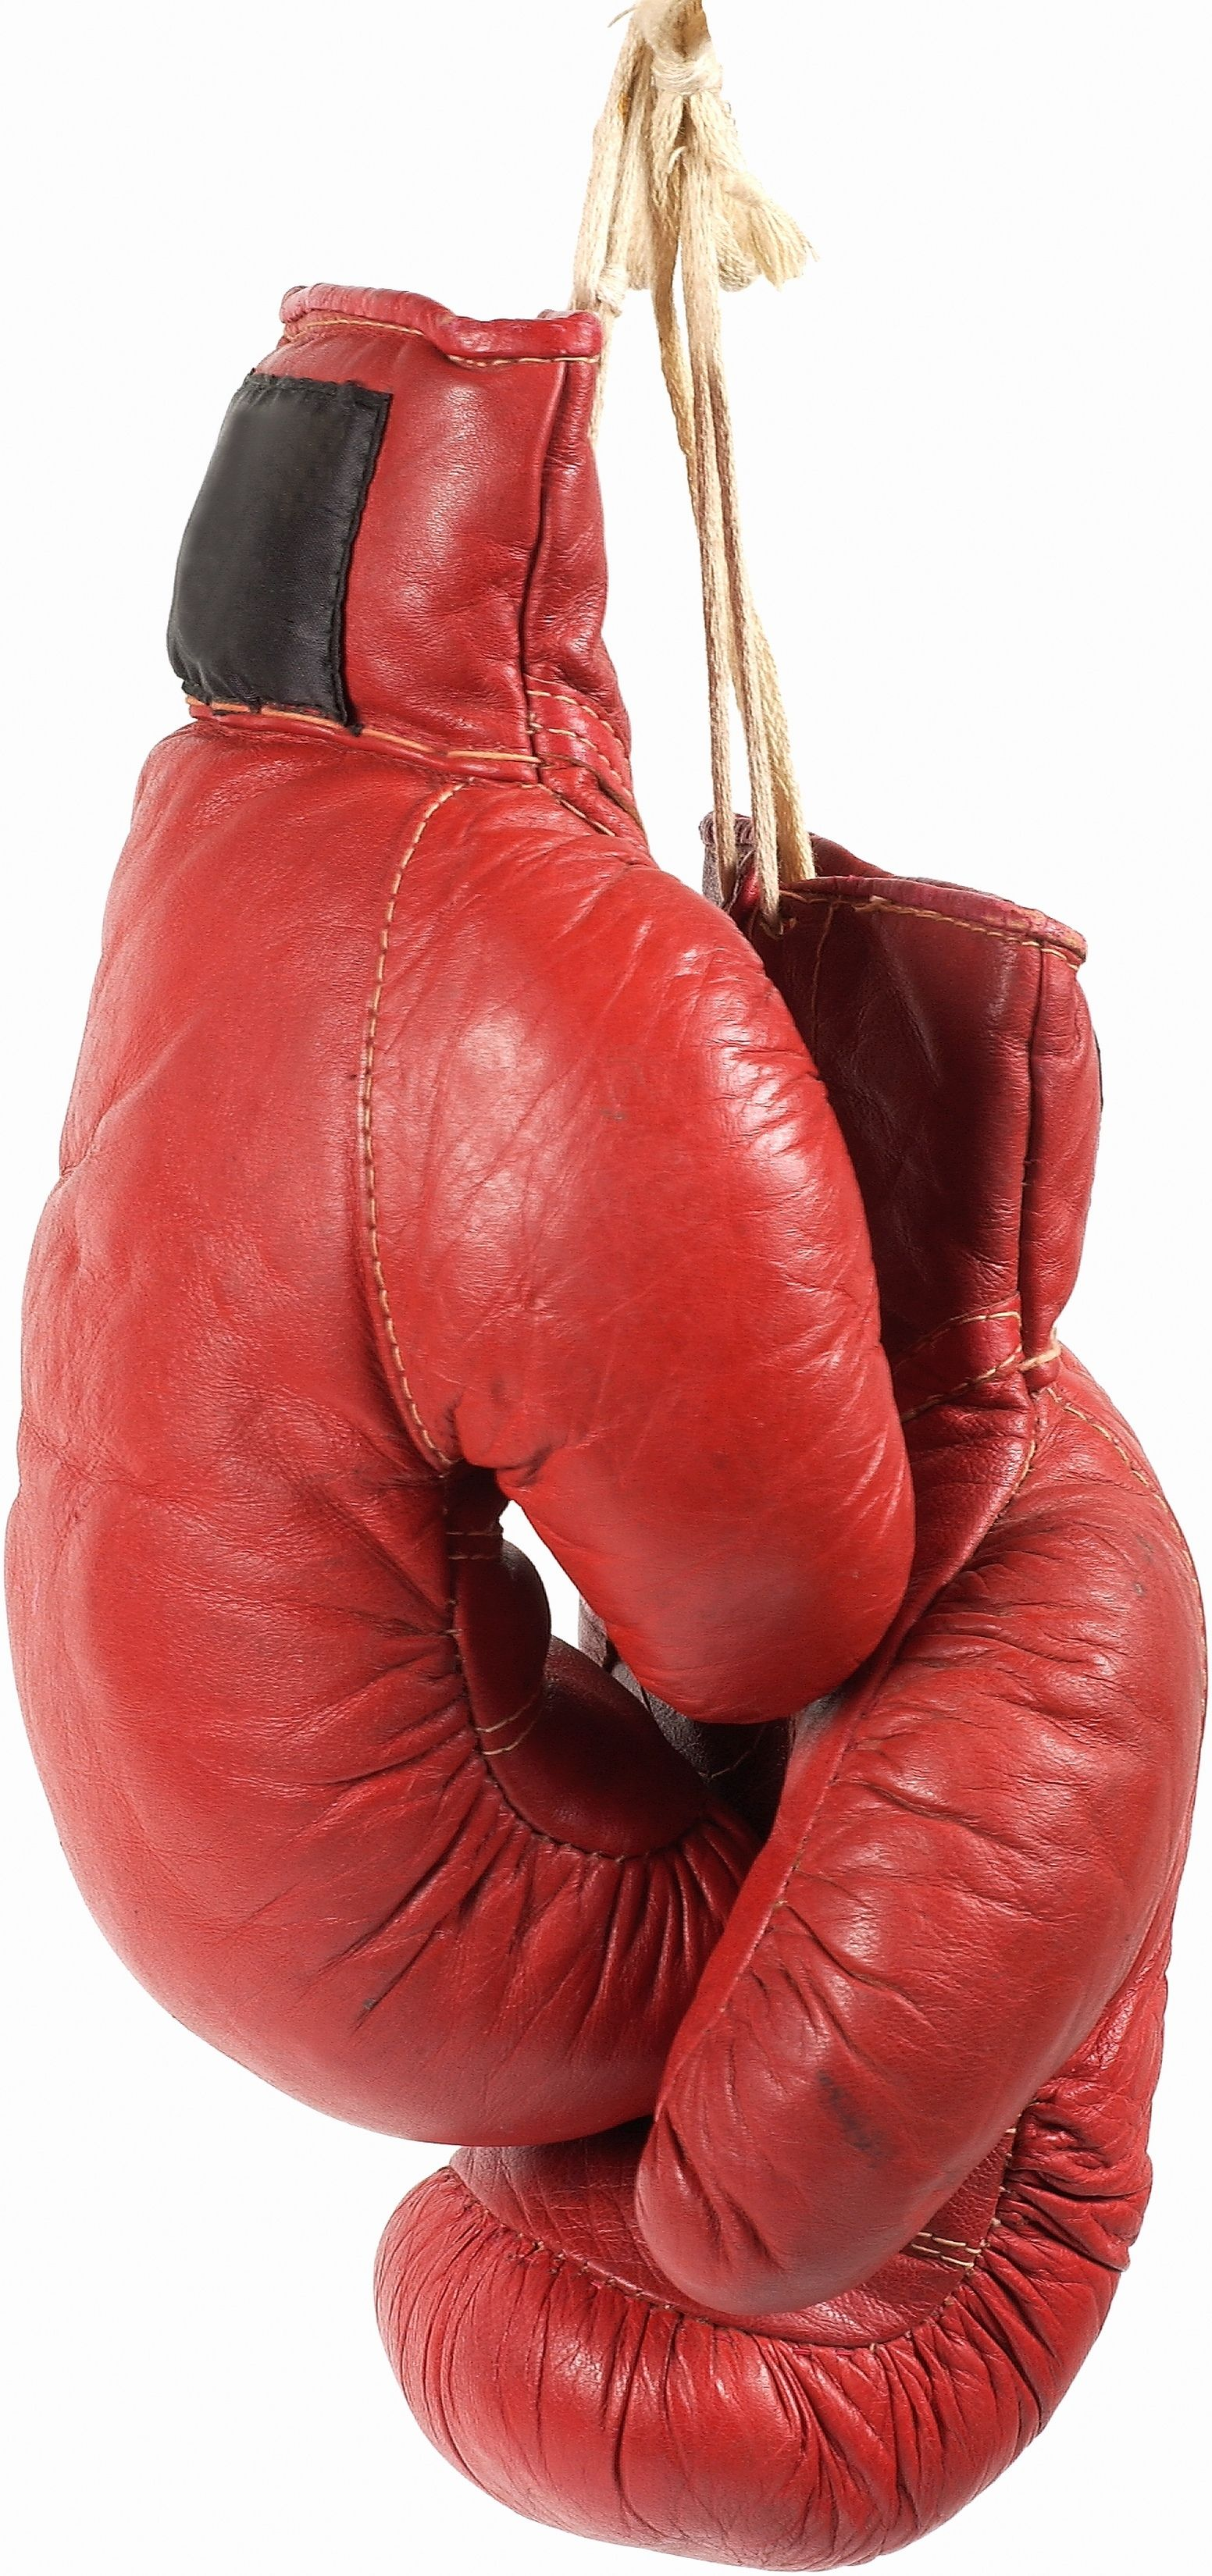 Boxing Png Image 32995 Boxing Training Gloves Boxing Gloves Vintage Box